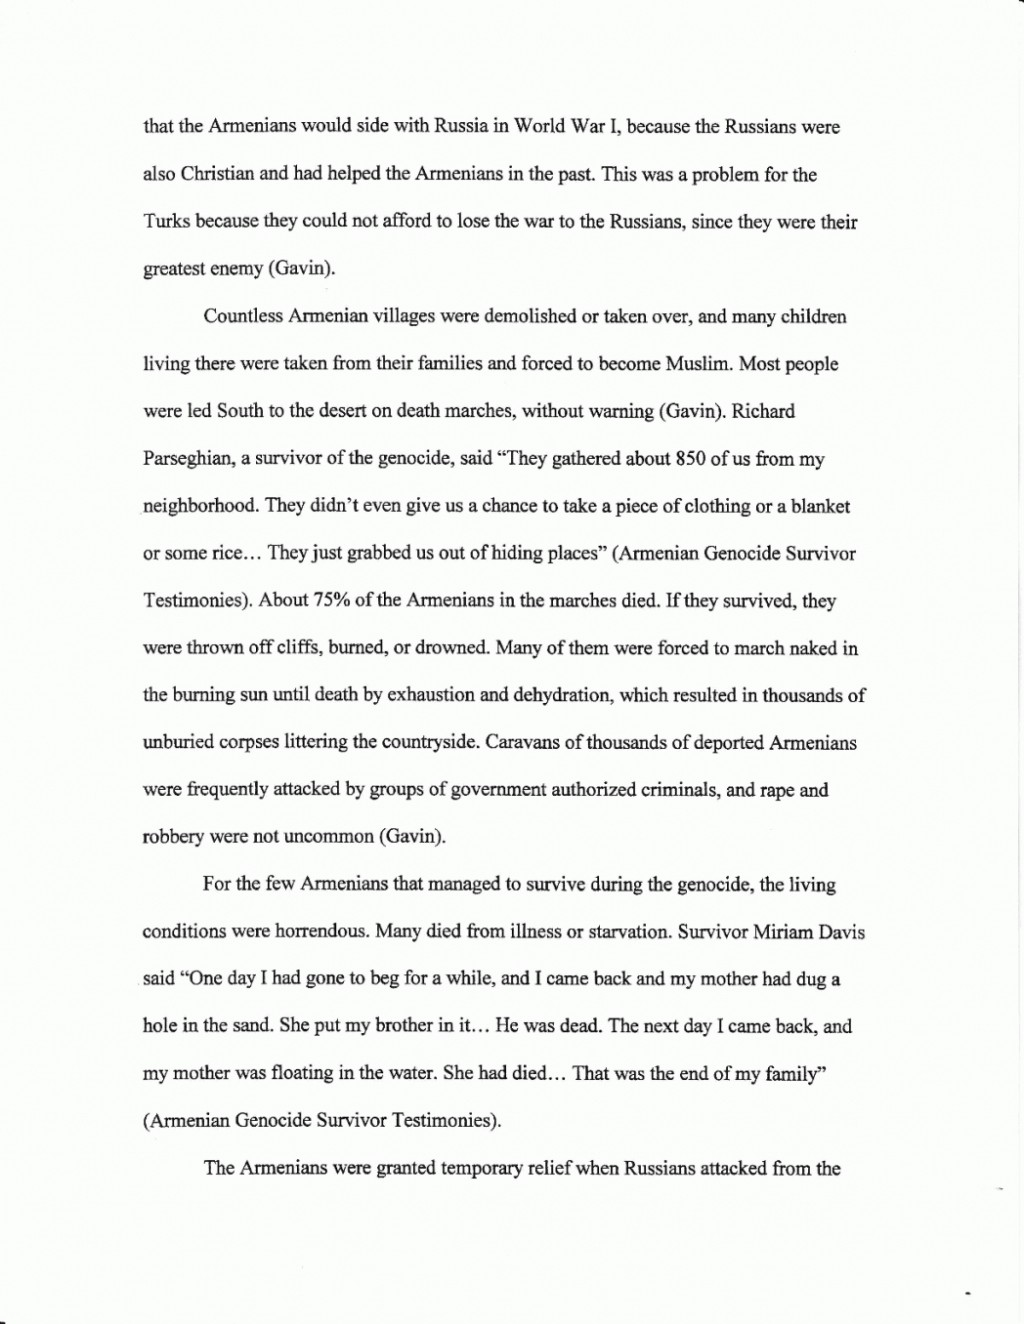 003 Easy Topics For Persuasive Essays Essay High R Schoolers School English Argumentative Students Uk Pdf Speech Funny Prompts 1048x1356 Example Imposing Christian Large